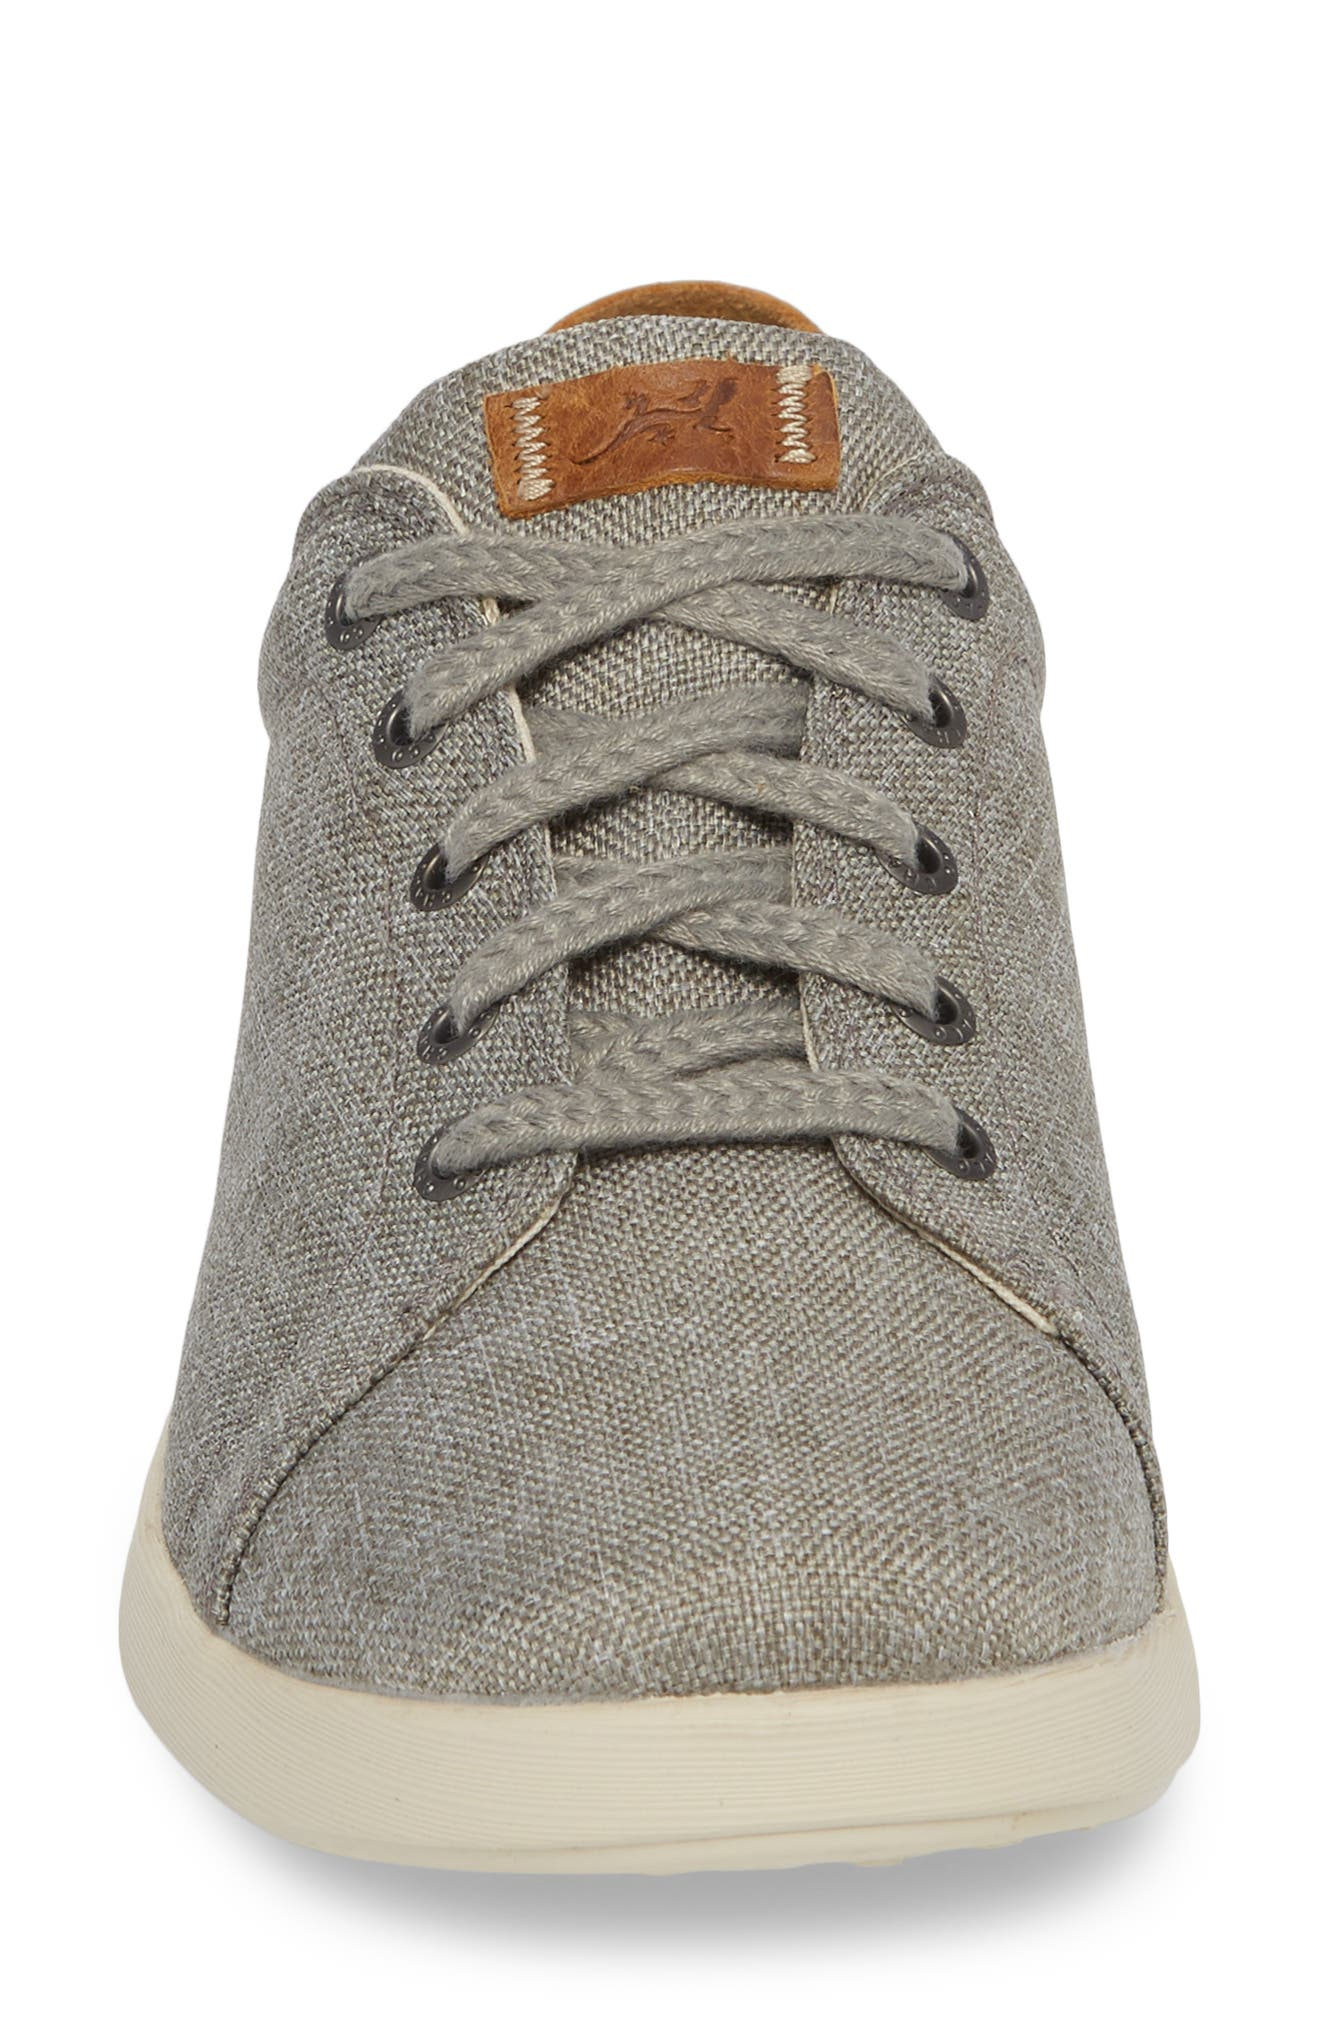 Ionia Sneaker,                             Alternate thumbnail 4, color,                             GRAY CANVAS